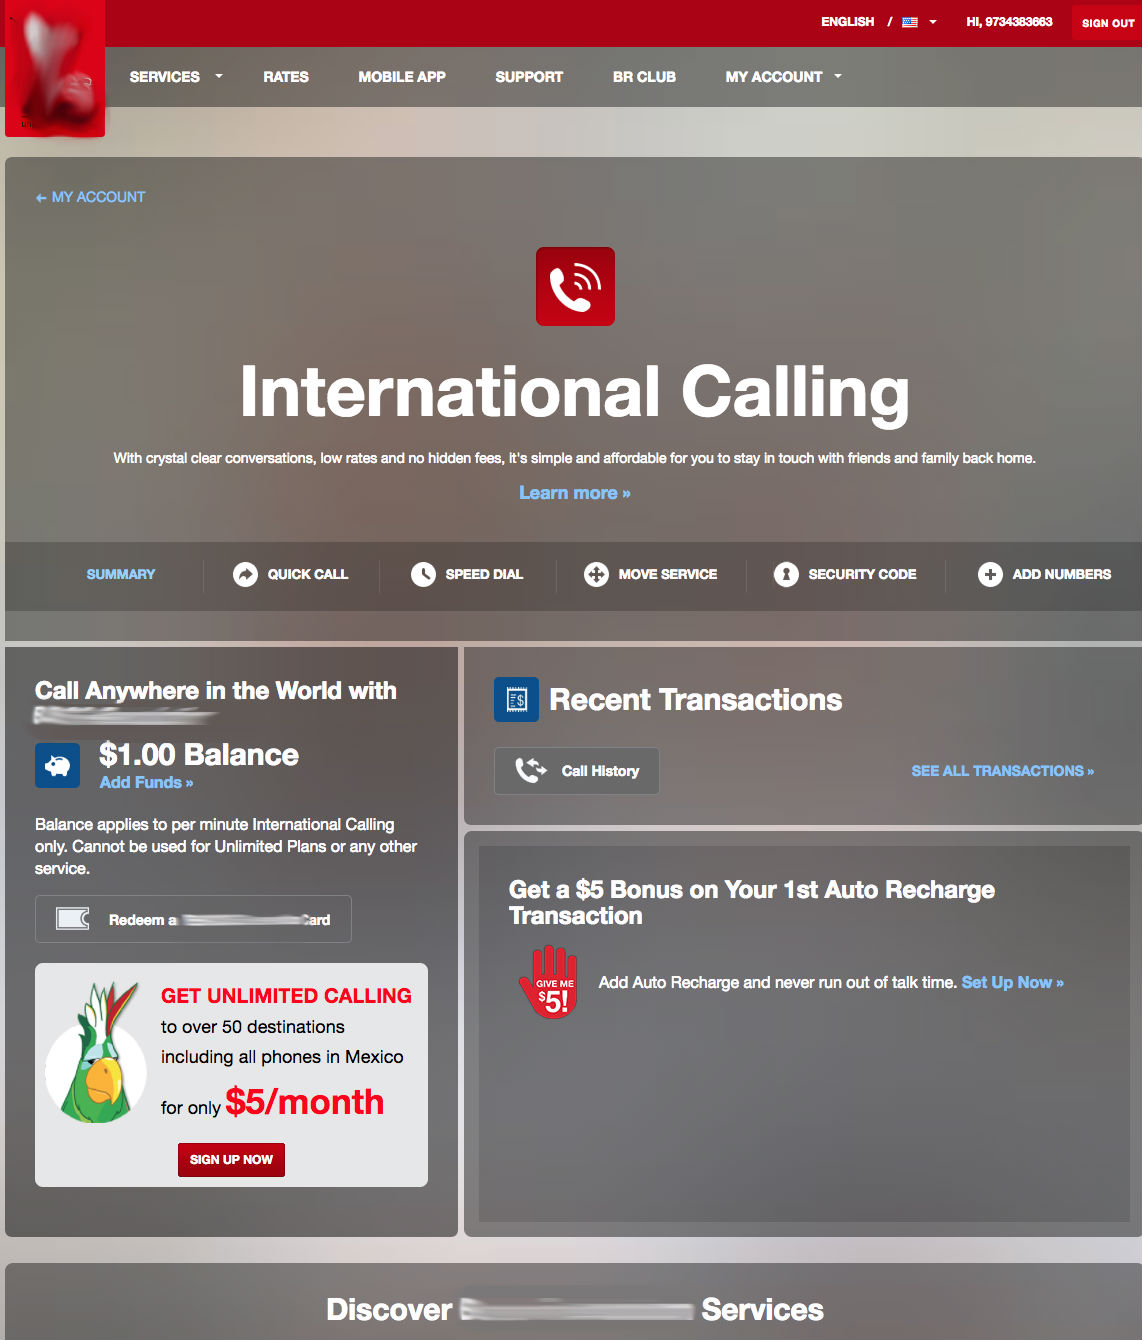 SAAS Web Application for the International Calling Company